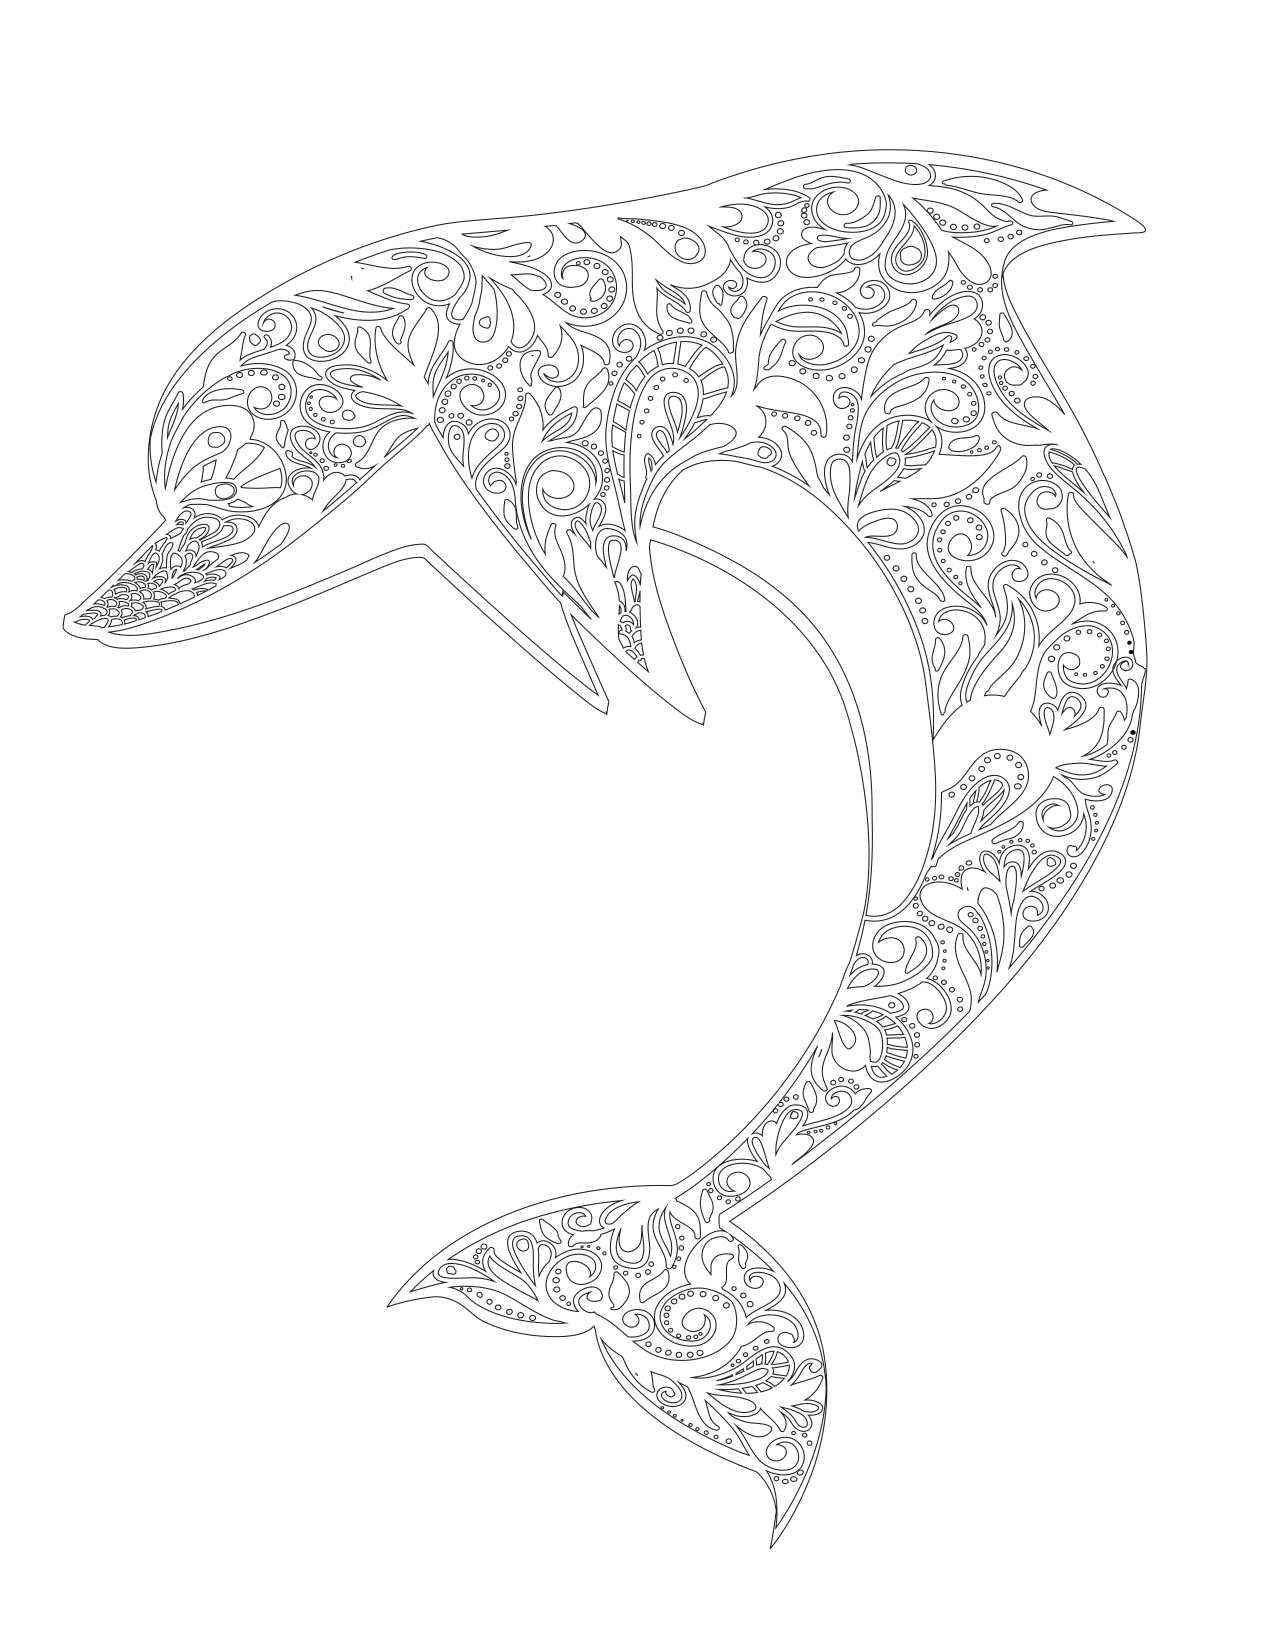 Free Adult Coloring Book Images by Blue Star Coloring Books Simply